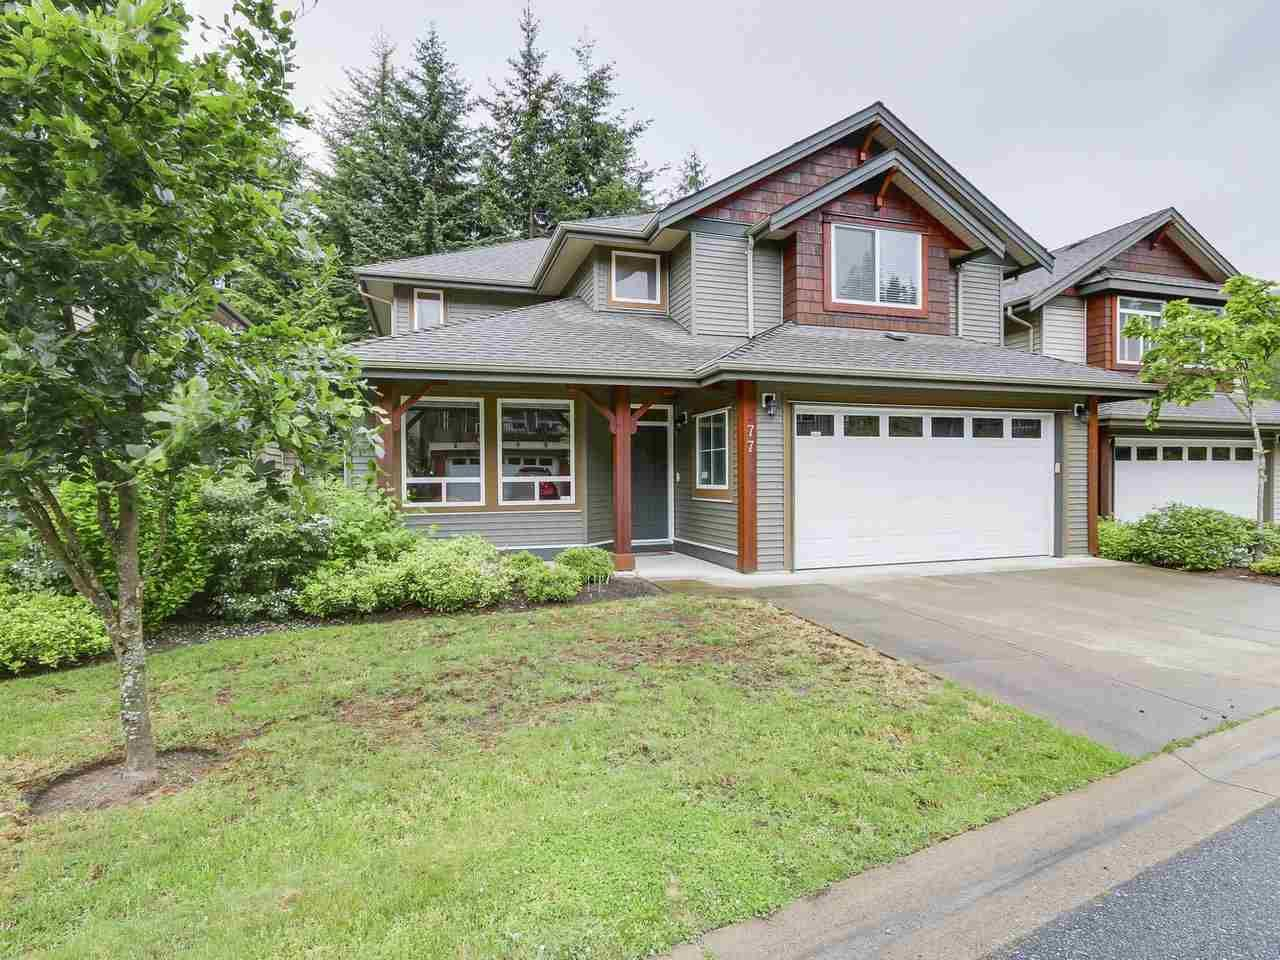 """Main Photo: 77 1701 PARKWAY Boulevard in Coquitlam: Westwood Plateau House for sale in """"TANGO"""" : MLS®# R2247965"""